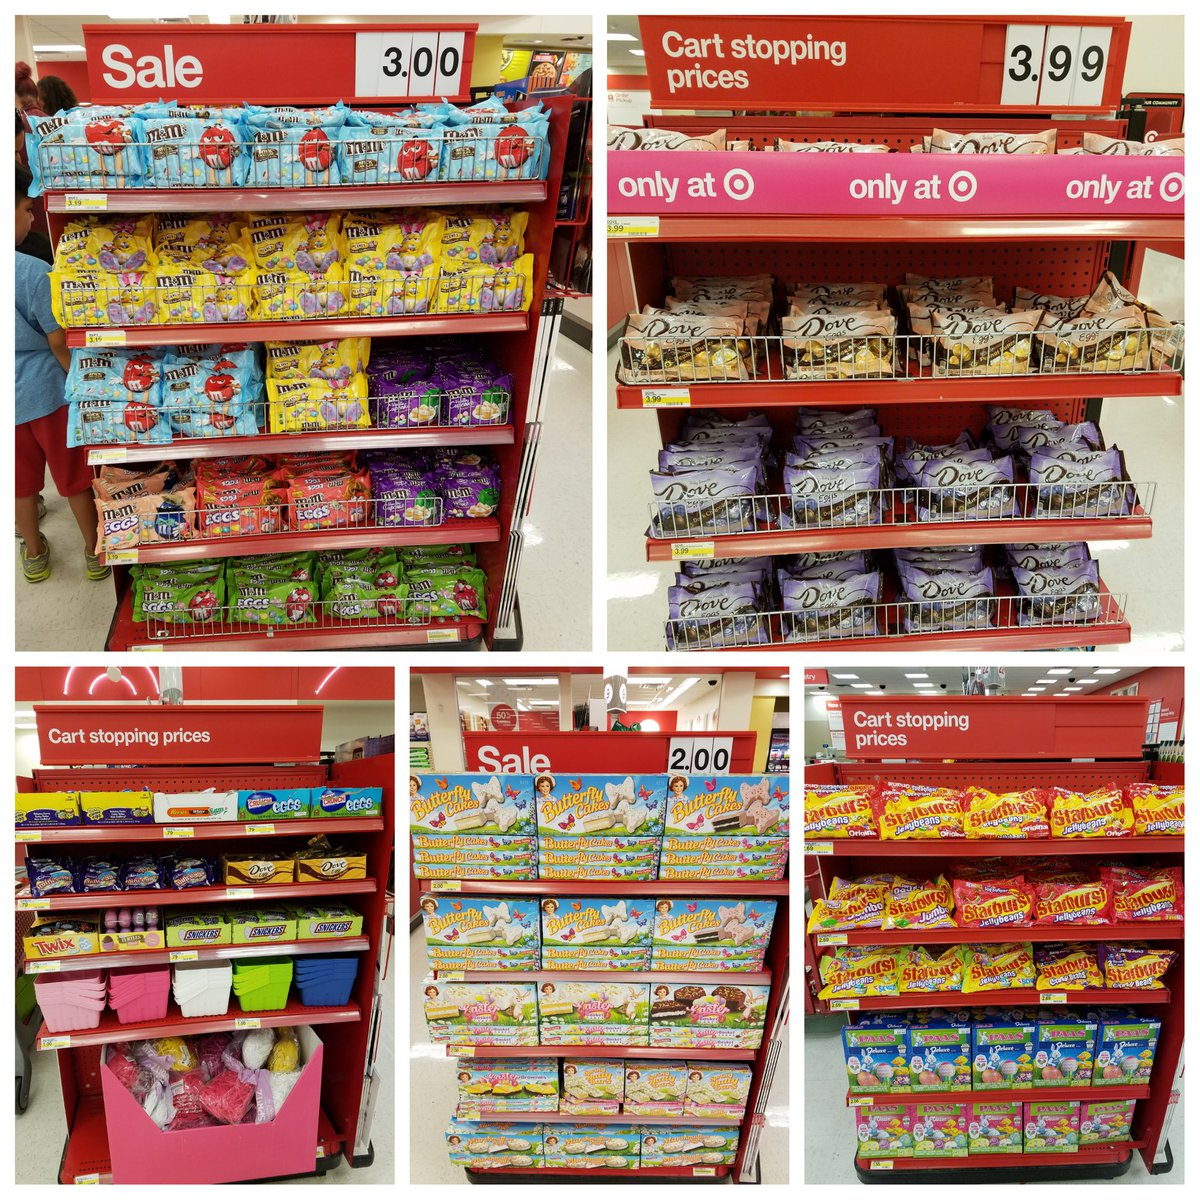 All ready for the Easter Bunny here at T2320 #T2320ModelStore @KennecitoSTL @AnitaELovato @johnp_sheehan<br>http://pic.twitter.com/zokDNI24Vd